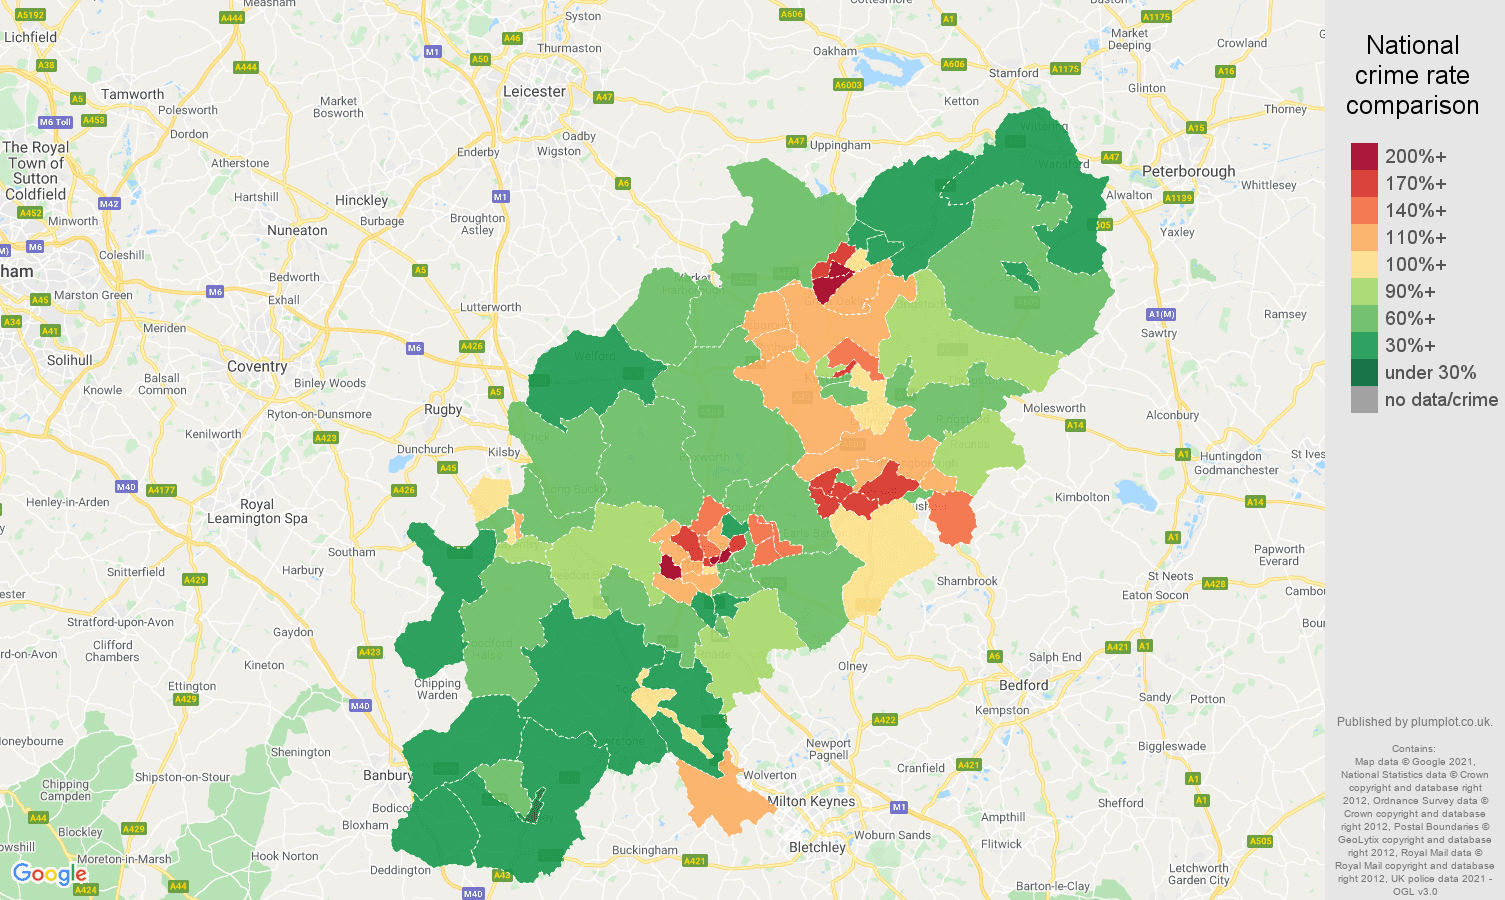 Northamptonshire criminal damage and arson crime rate comparison map